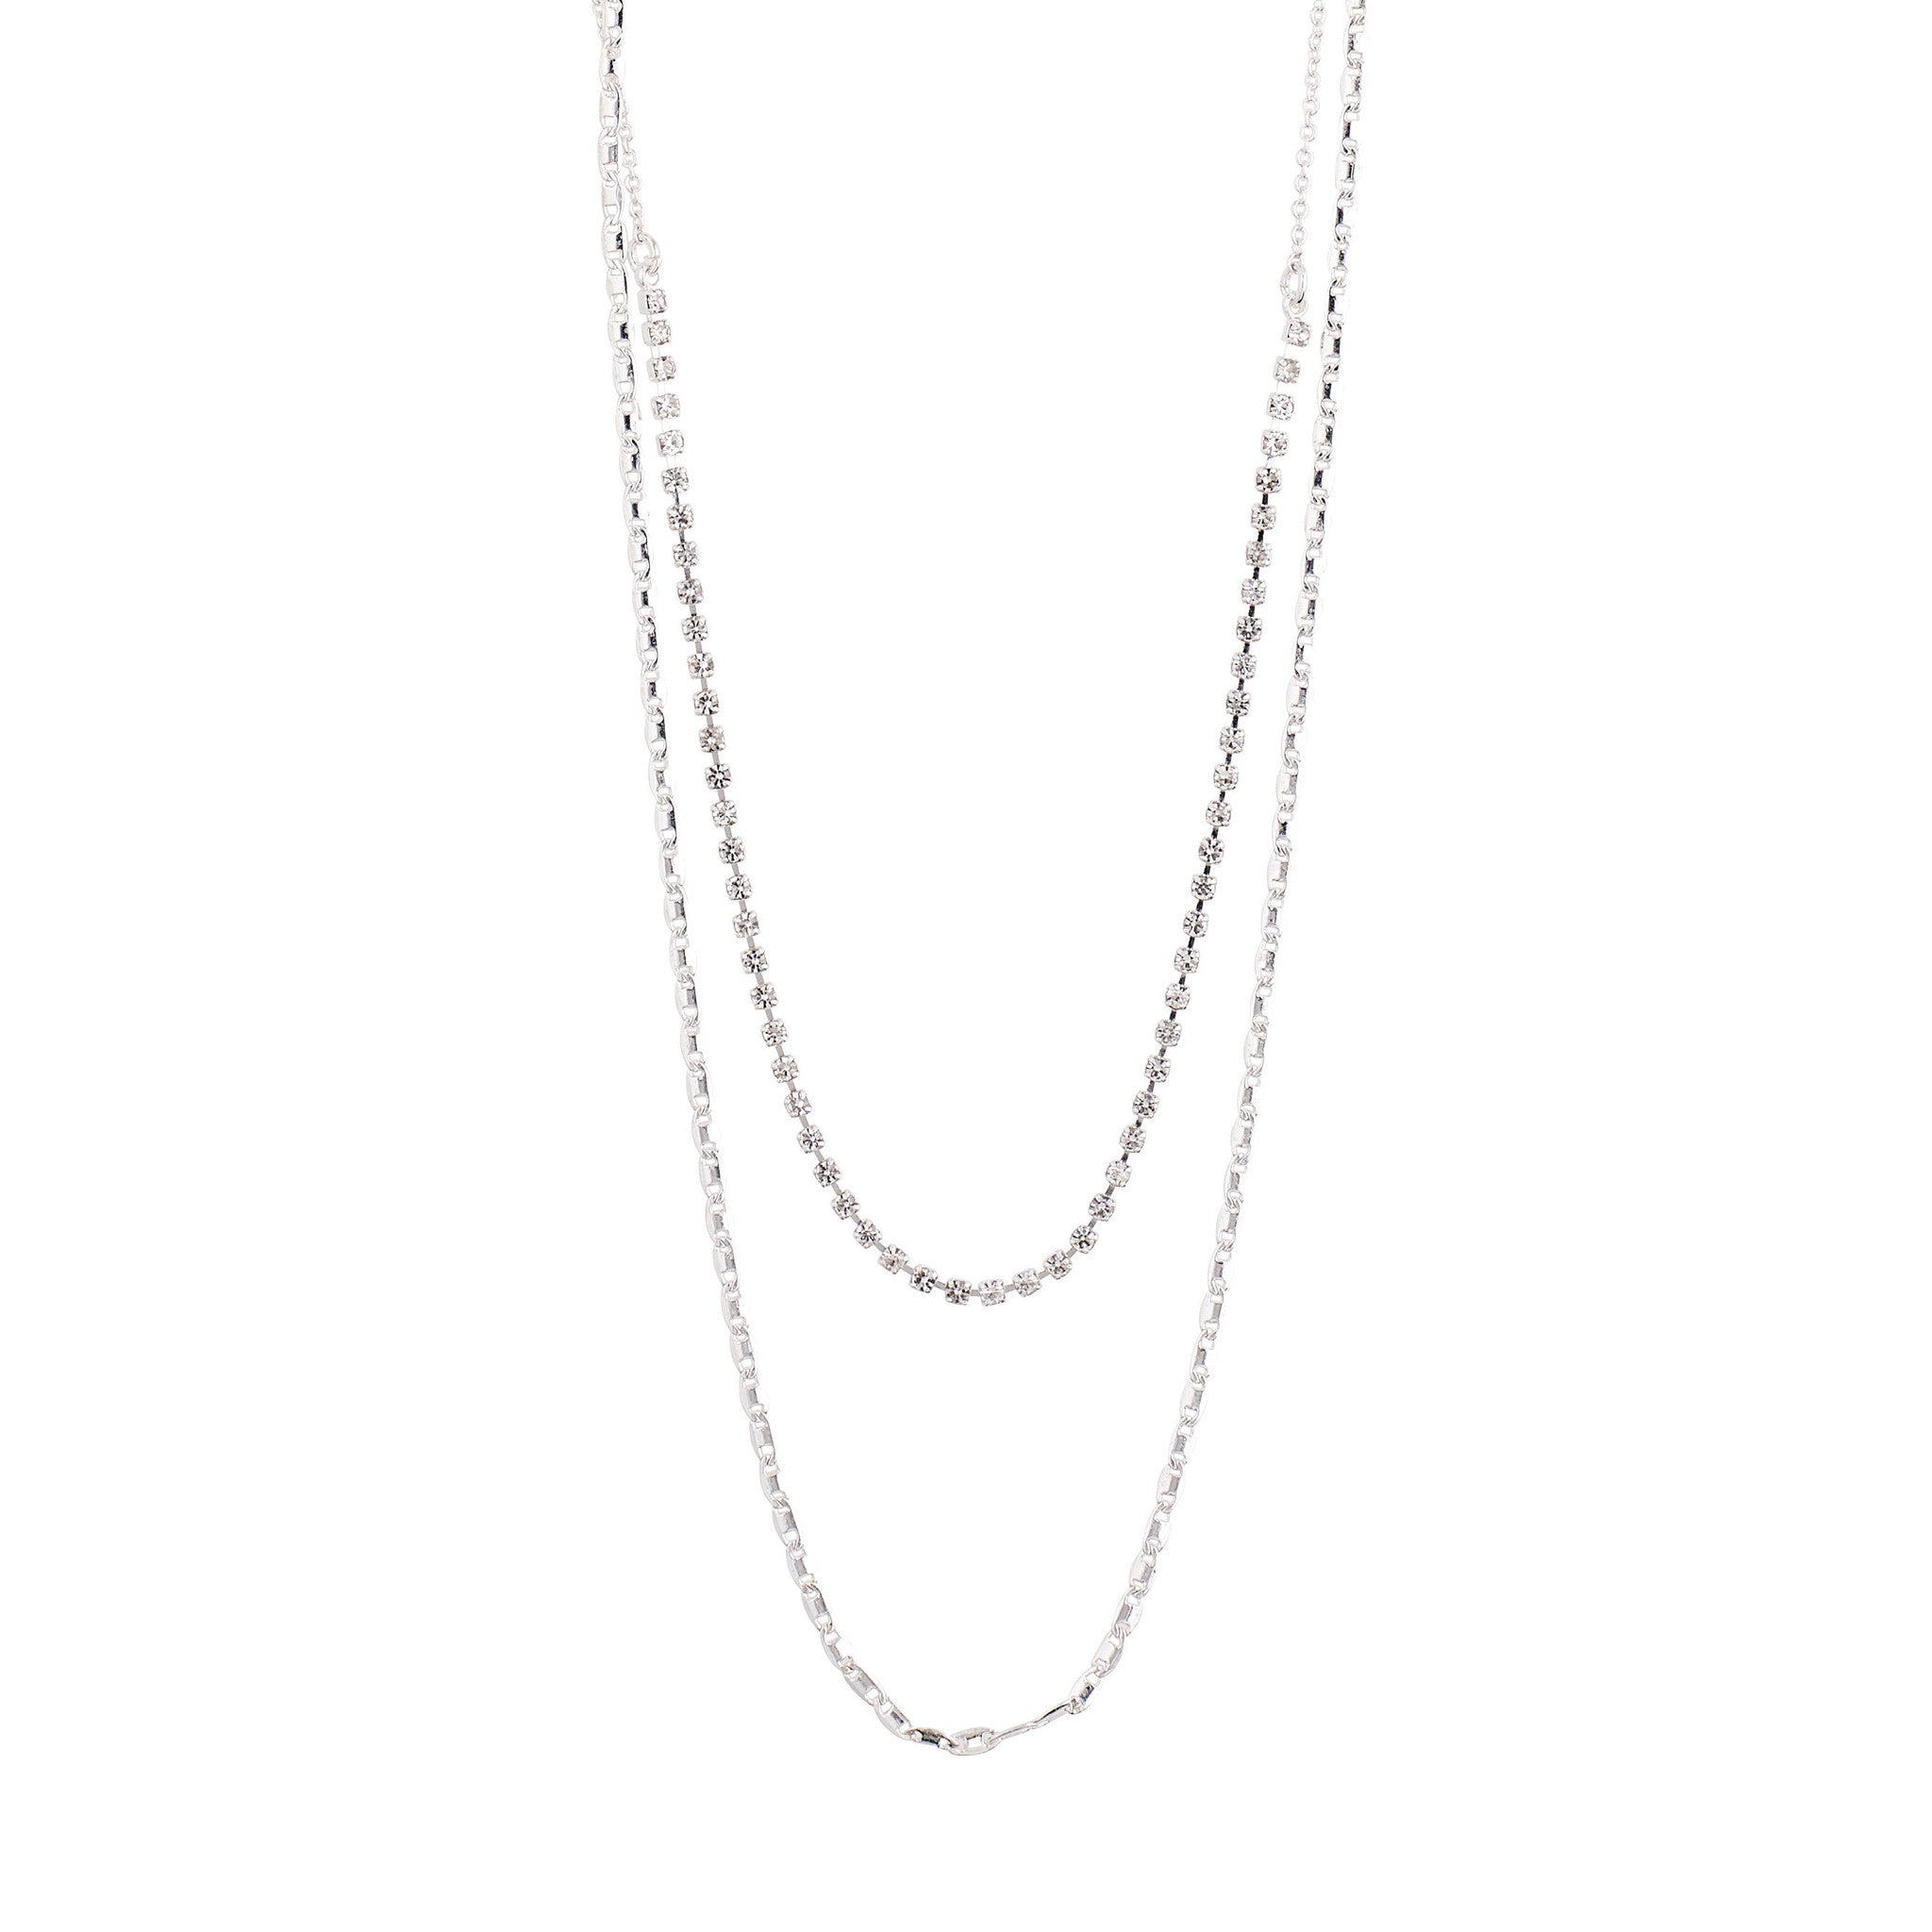 Cherished 2-in-1 Necklace - Silver